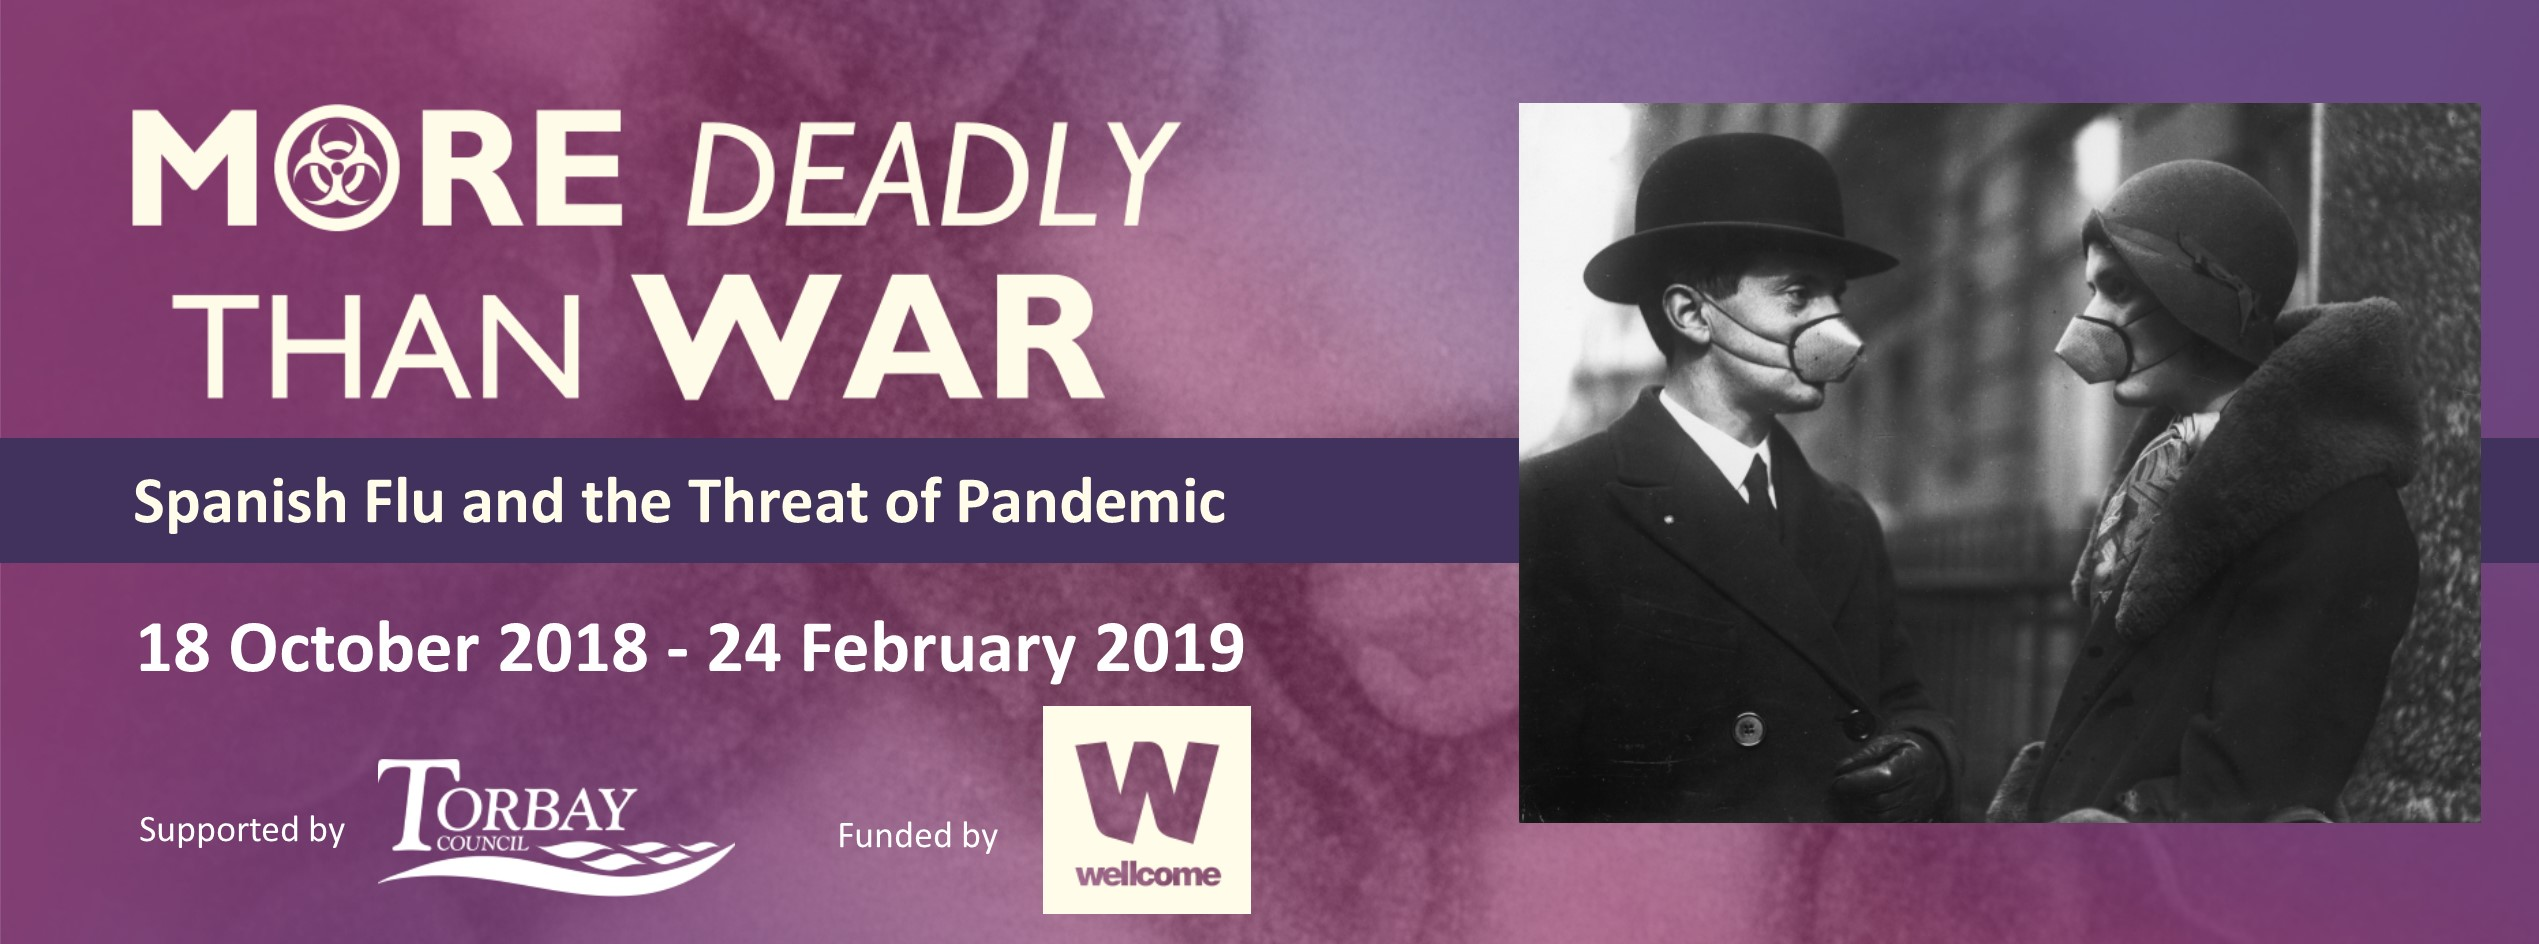 More Deadly Than War - Spanish Flu and the Threat of Pandemic